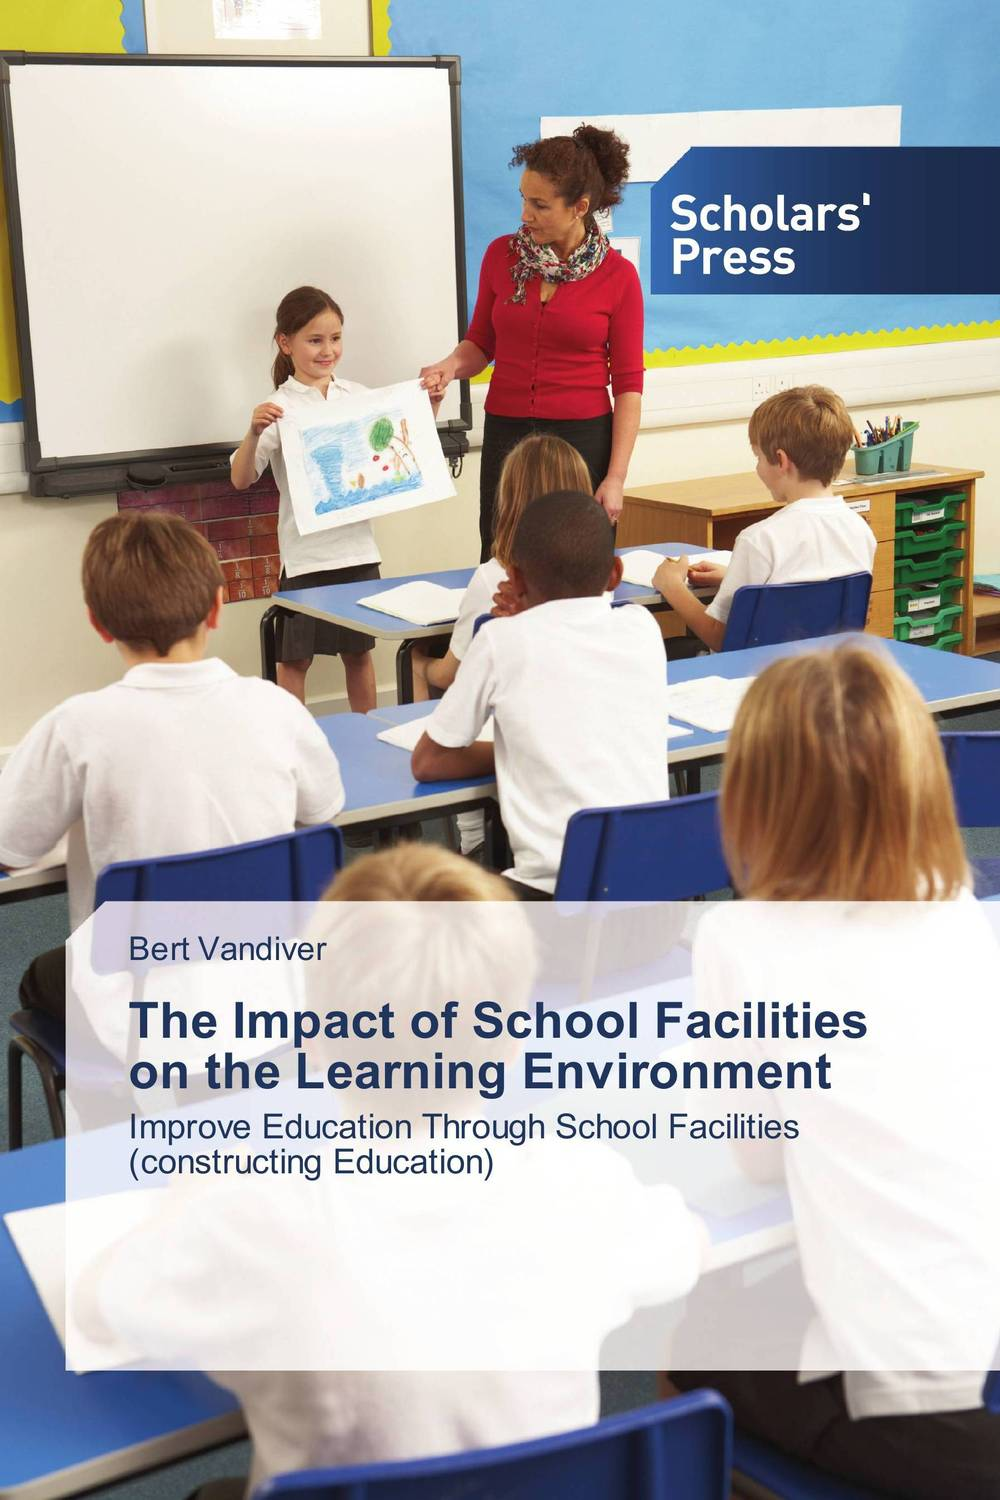 The Impact of School Facilities on the Learning Environment seeing things as they are